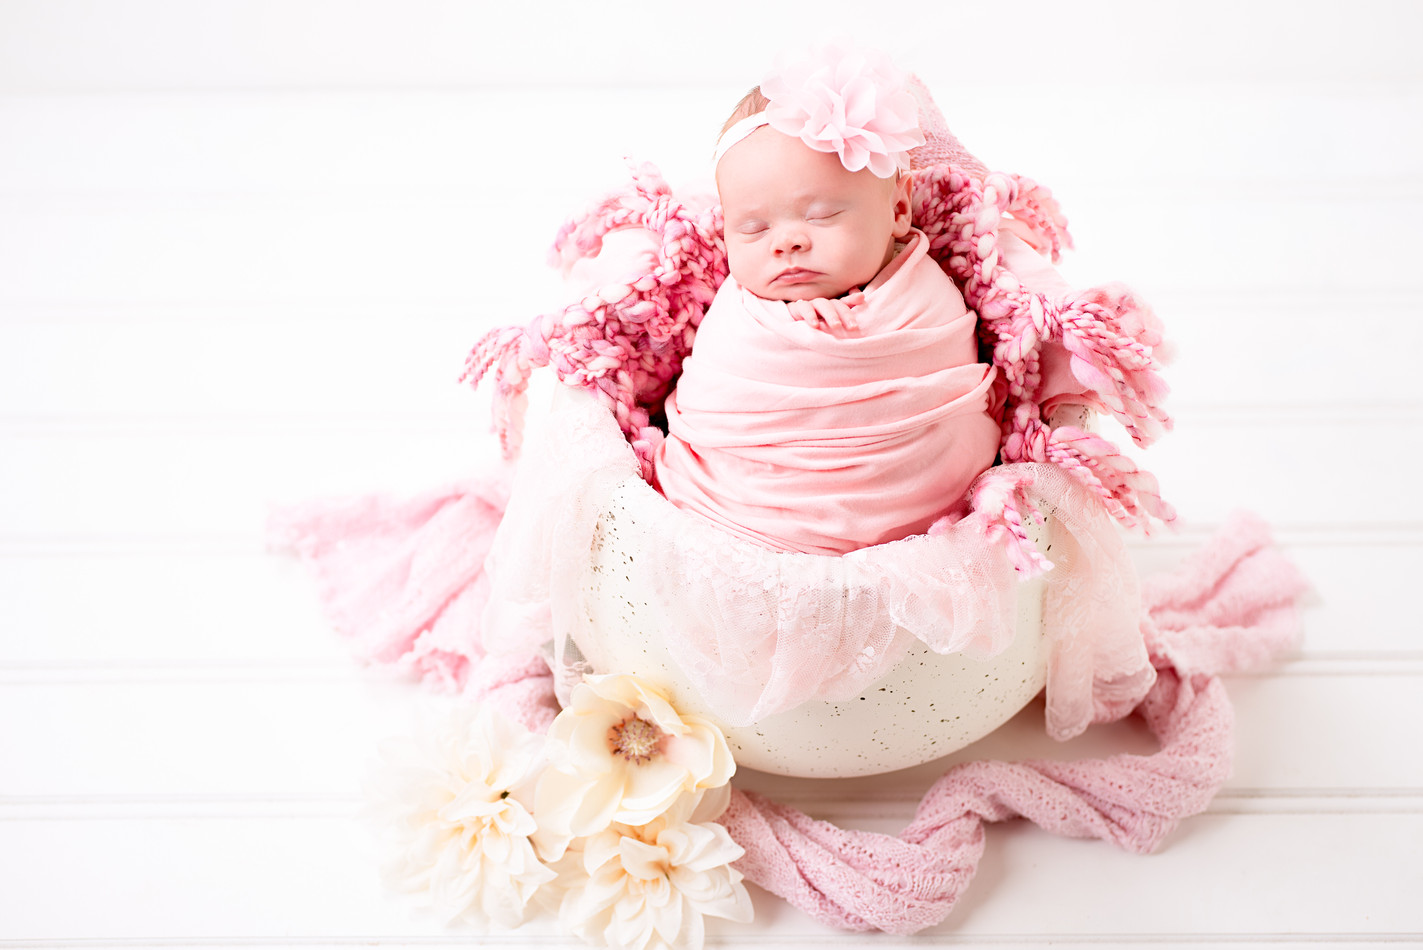 A whites and neutrals newborn photography